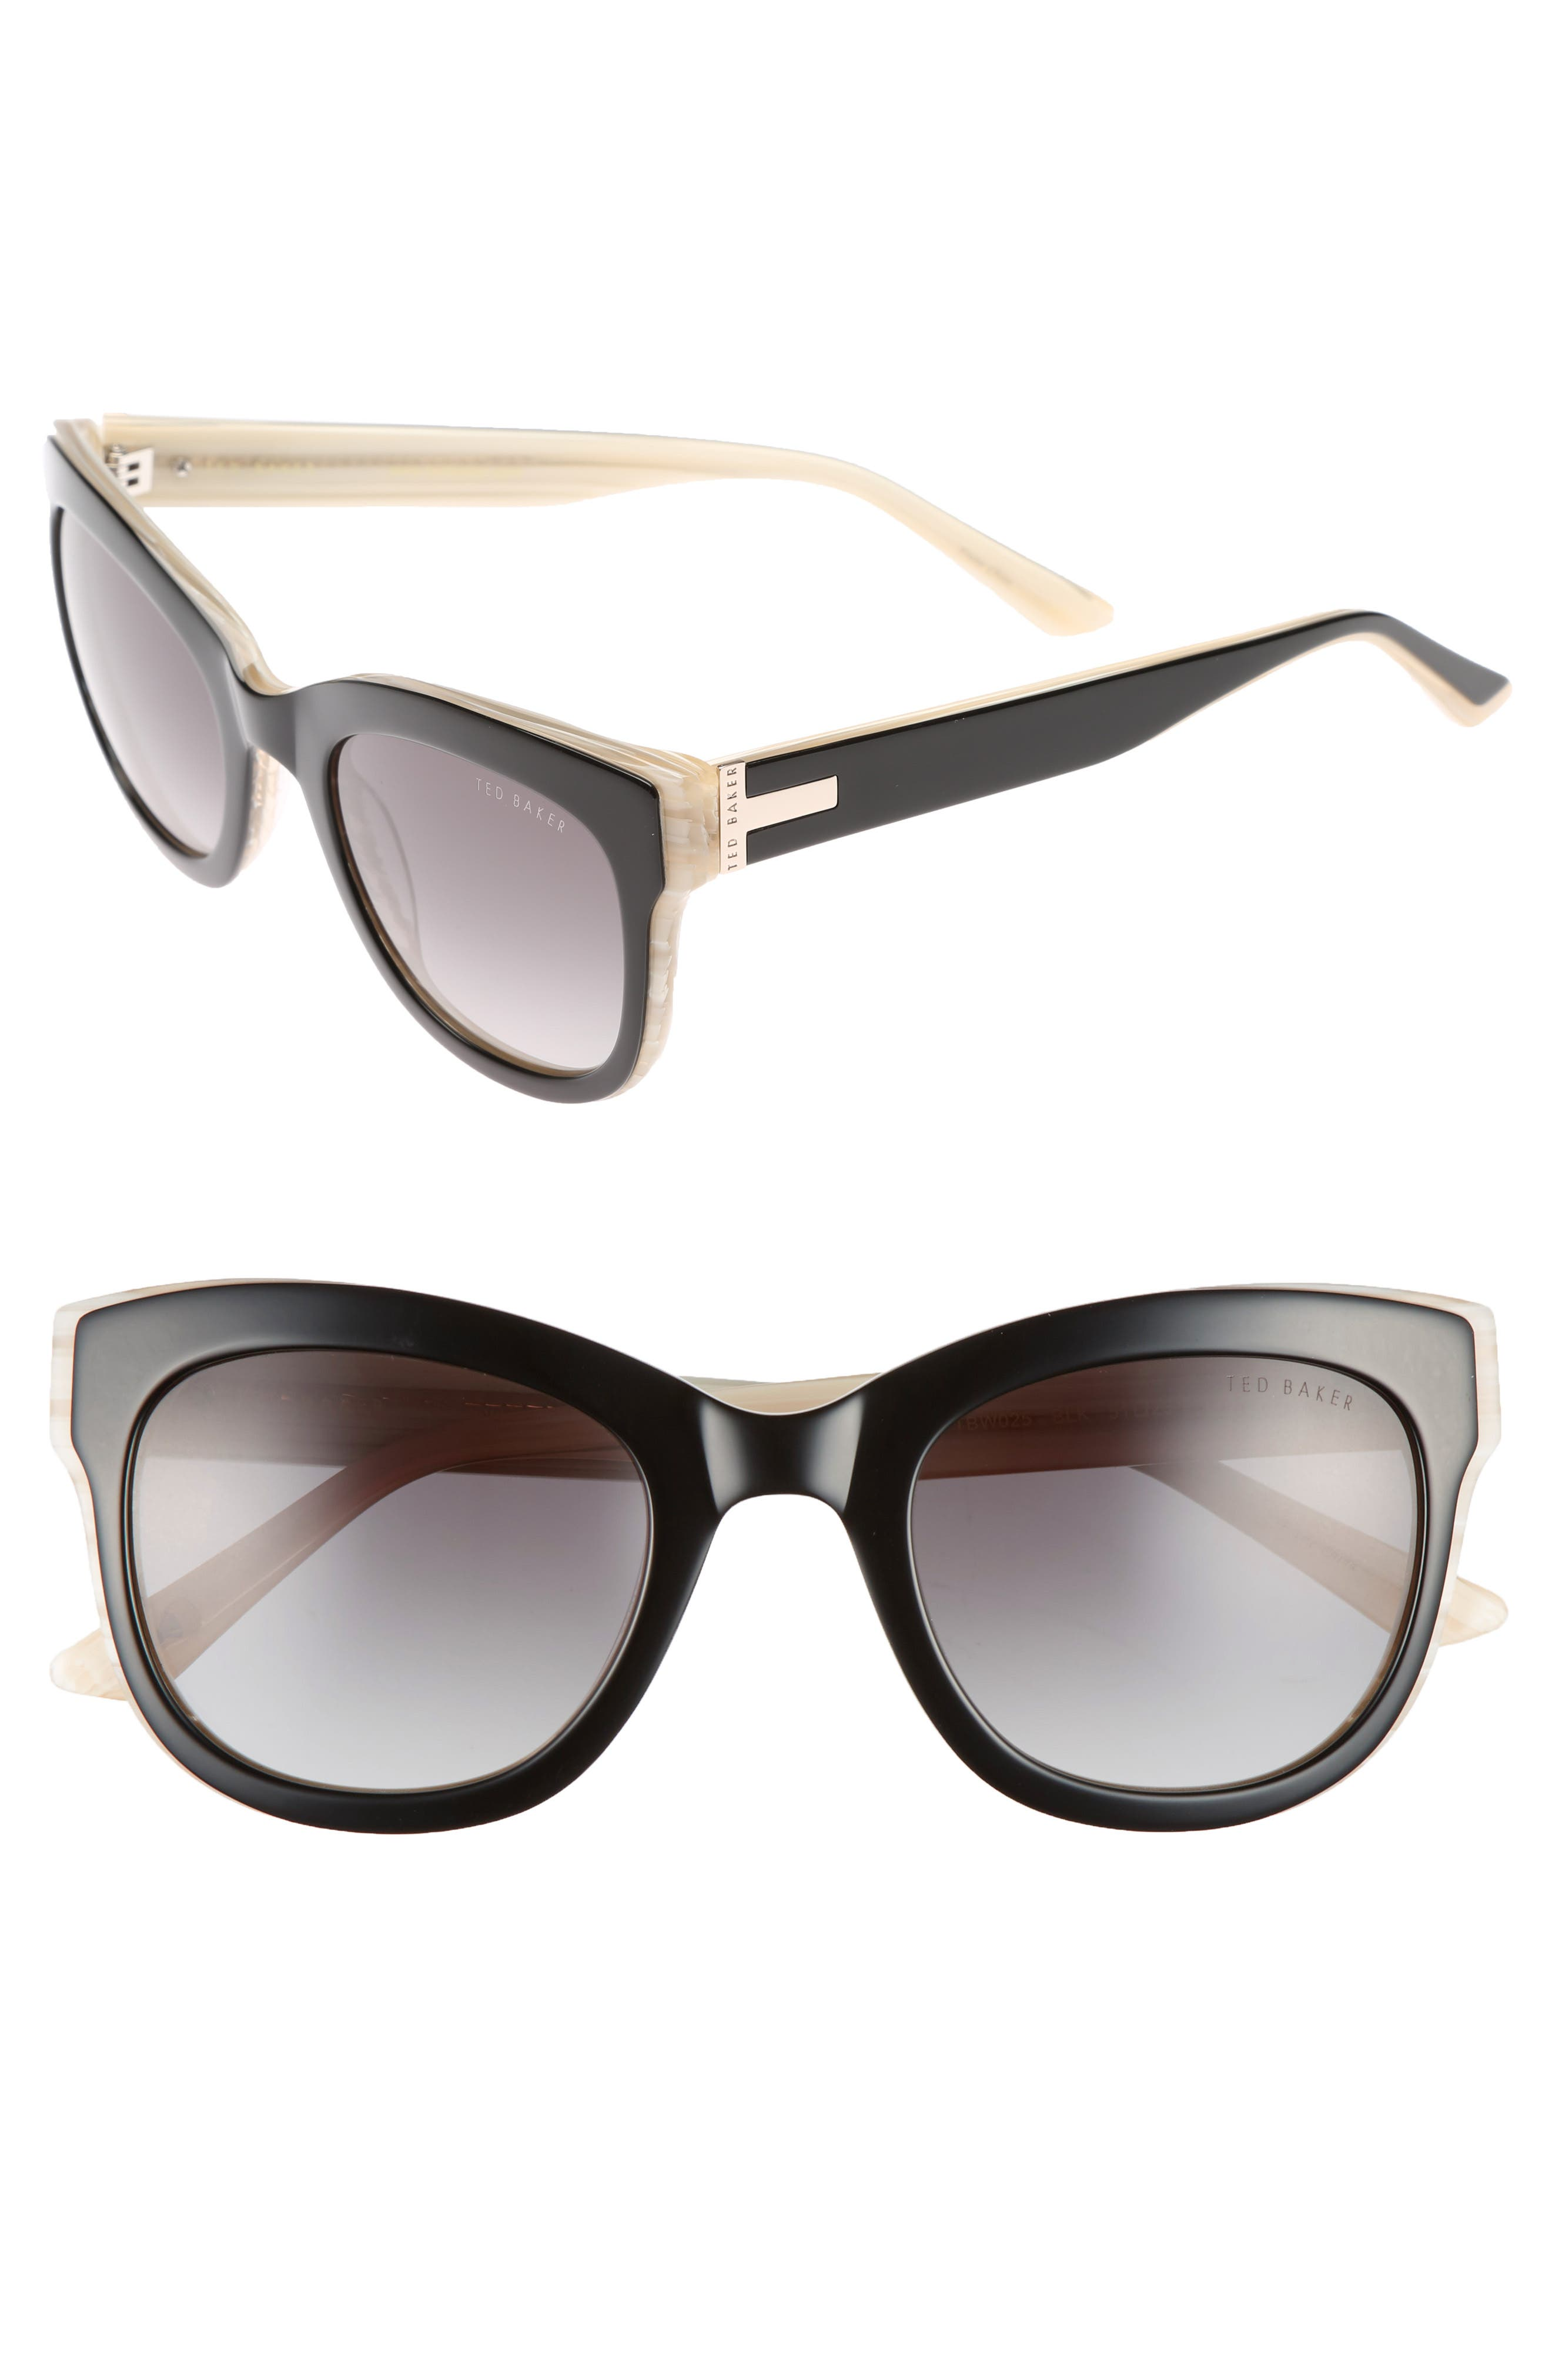 51mm Square Cat Eye Sunglasses,                         Main,                         color, Black